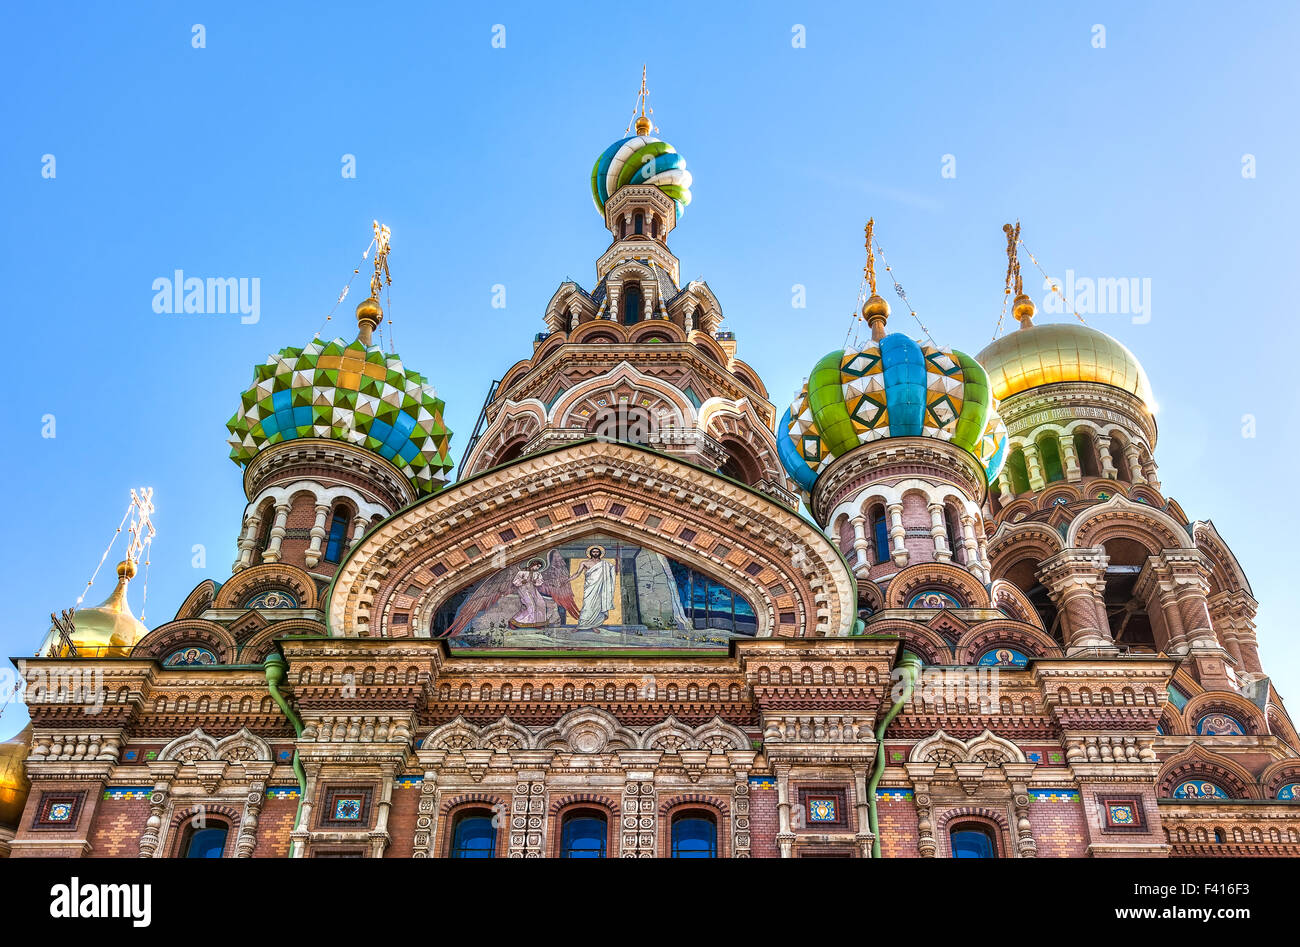 Domes of Church of the Savior on Spilled Blood in St. Petersburg, Russia - Stock Image